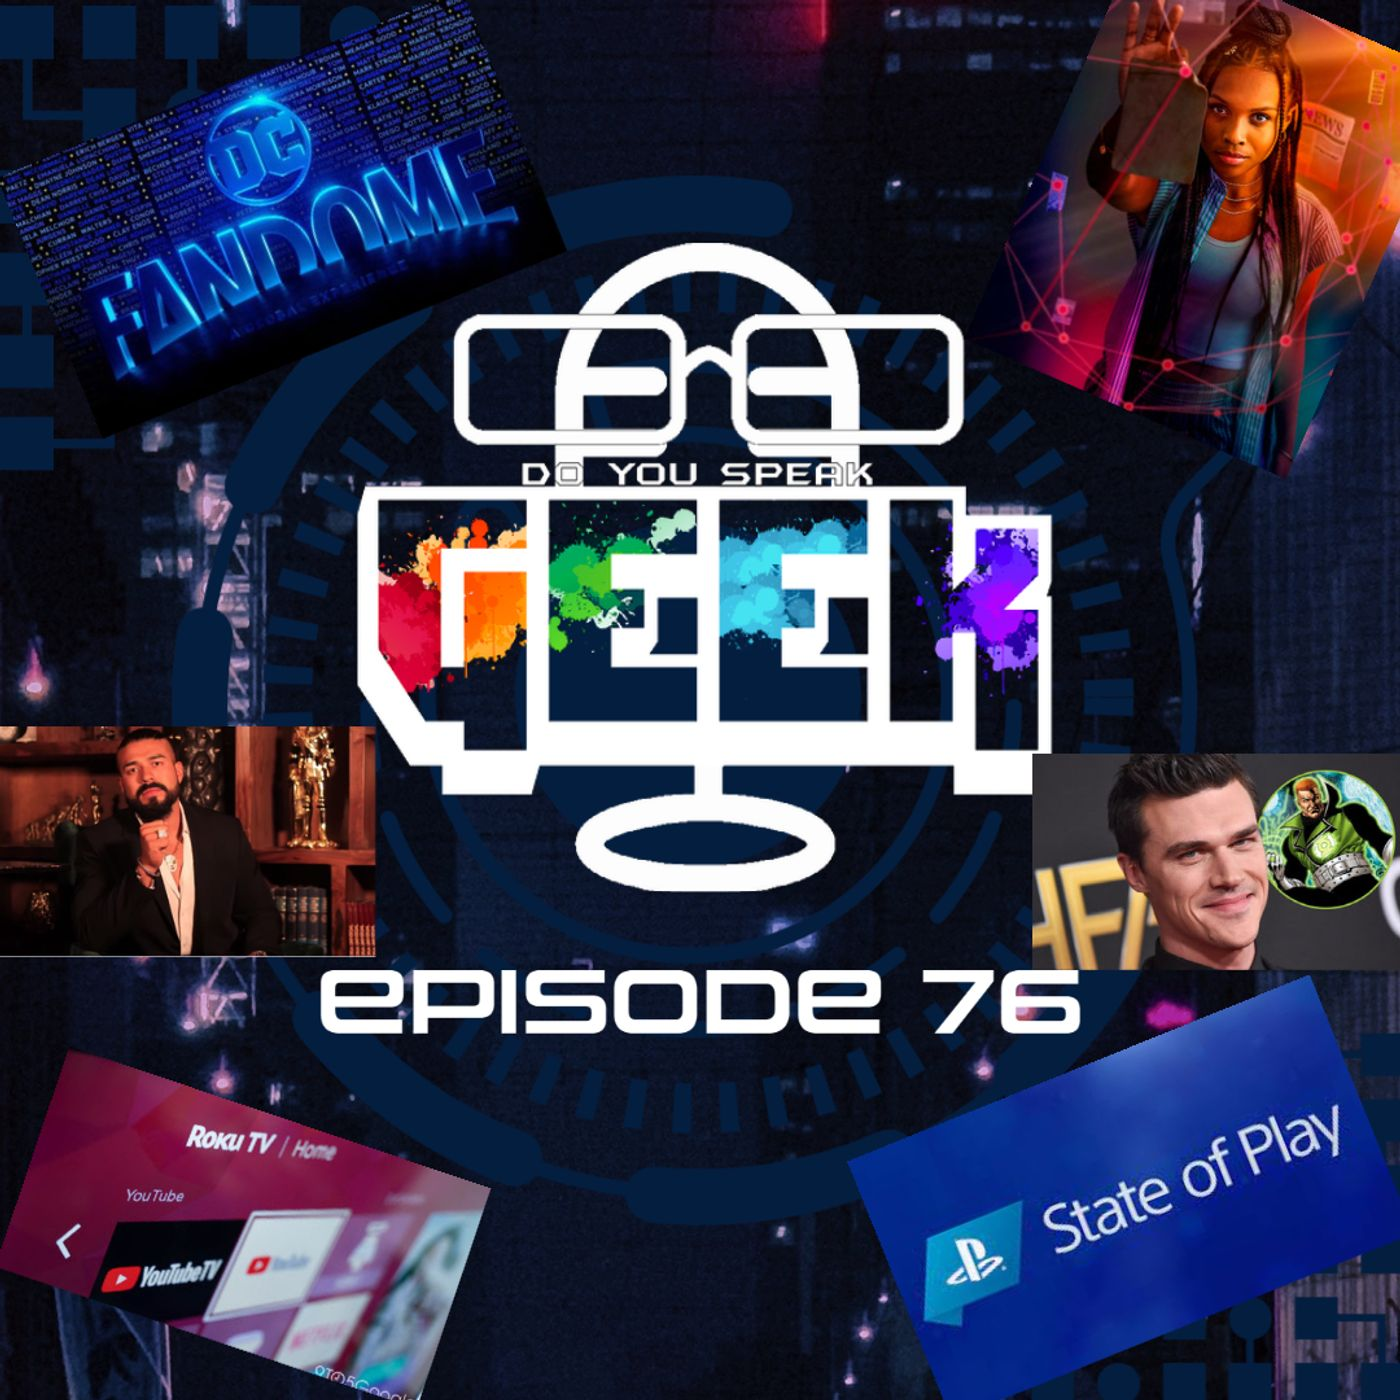 Episode 76 (DC FanDome, Finn Wittrock, State of Play, Roku and more)